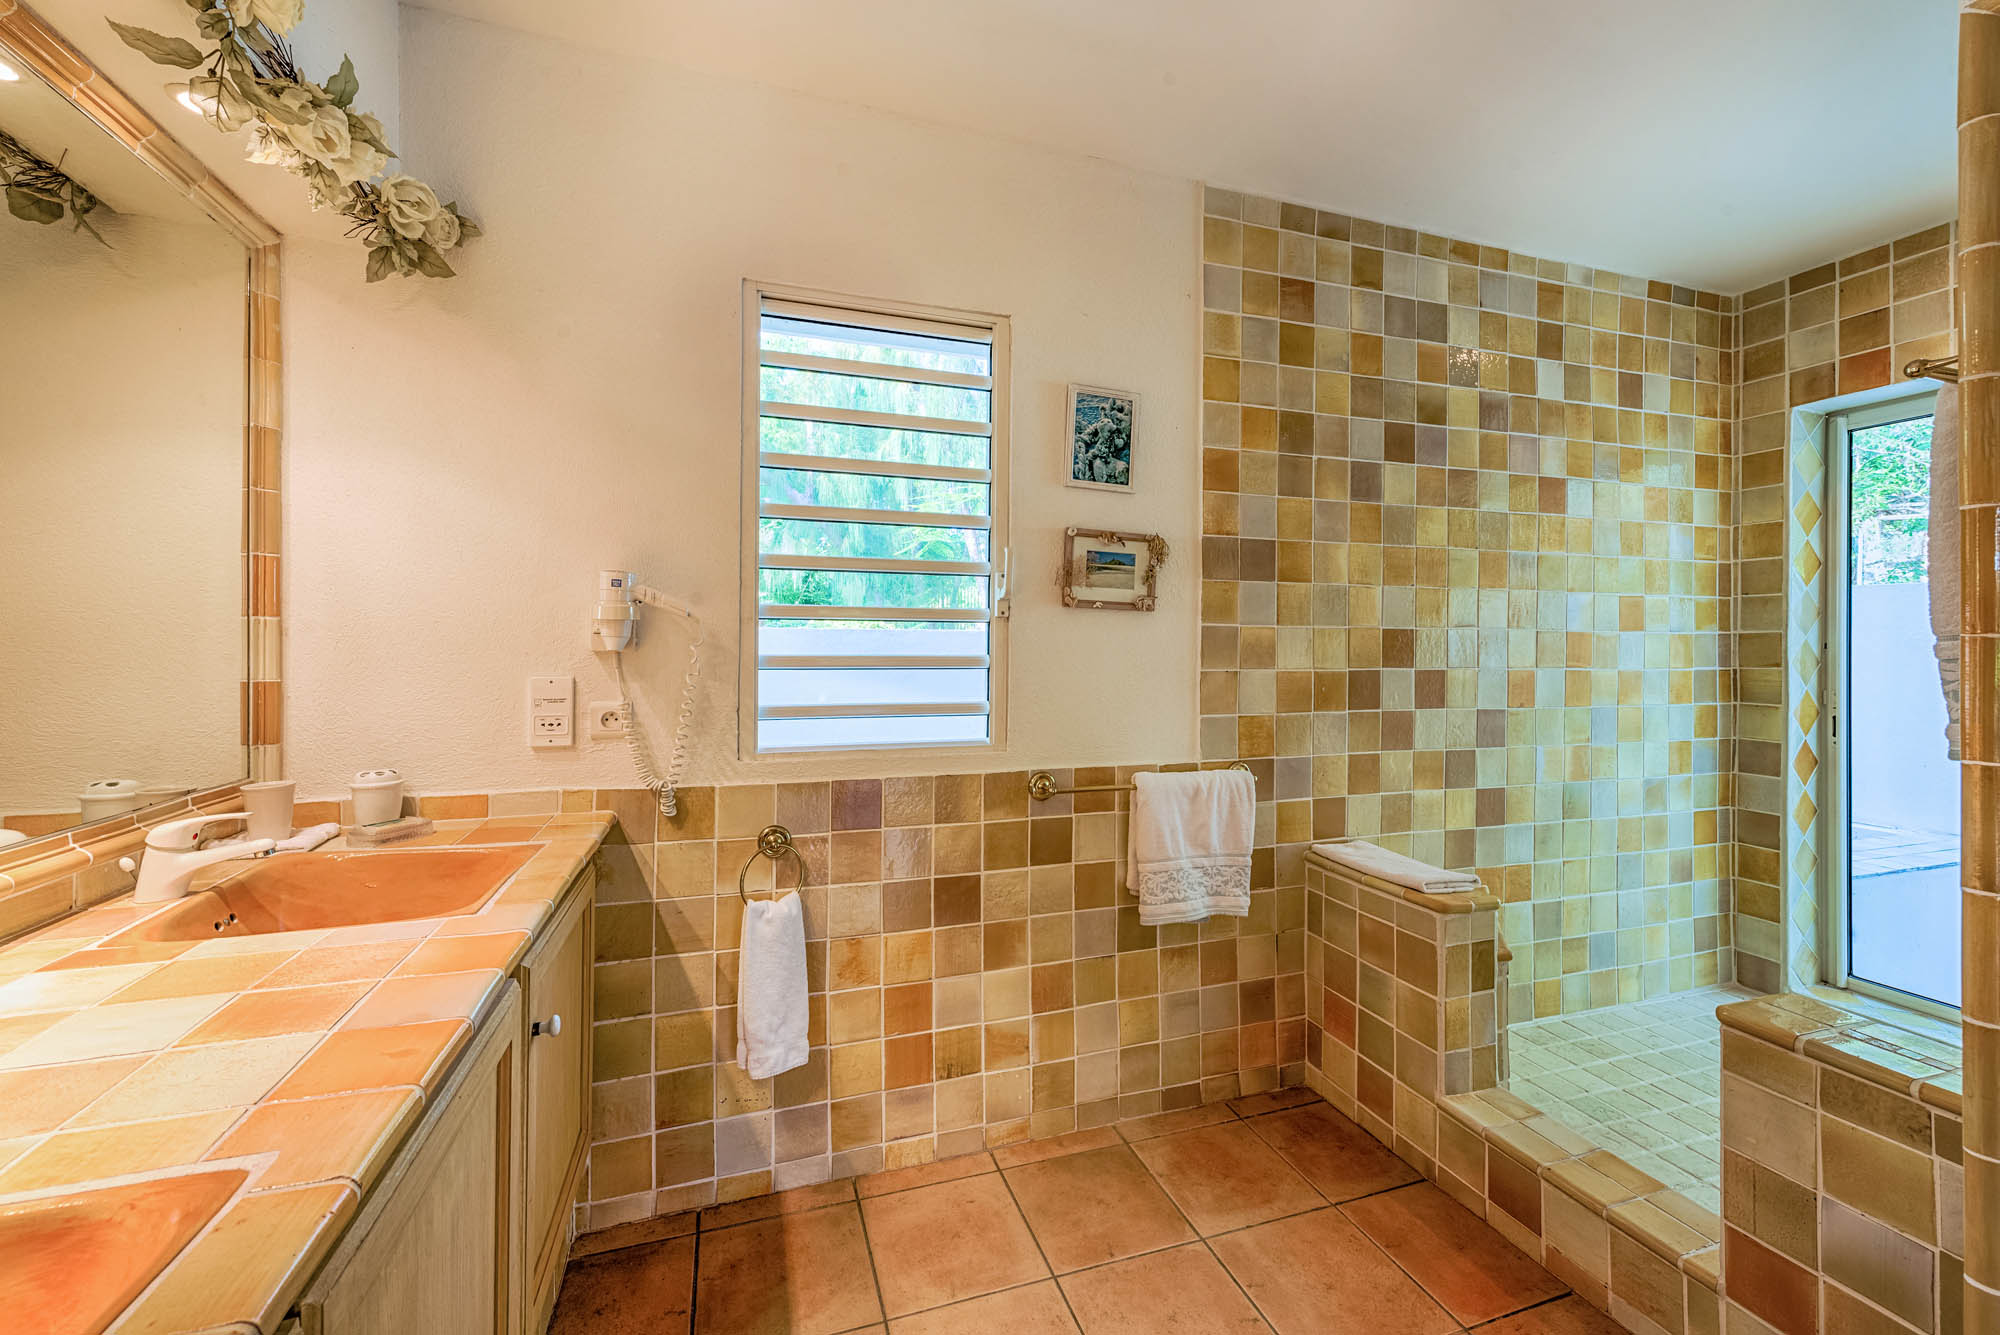 The beautiful designed bathroom of Villa Little Provence, Baie Longue, Terres Basses, St. Martin, French West Indies.